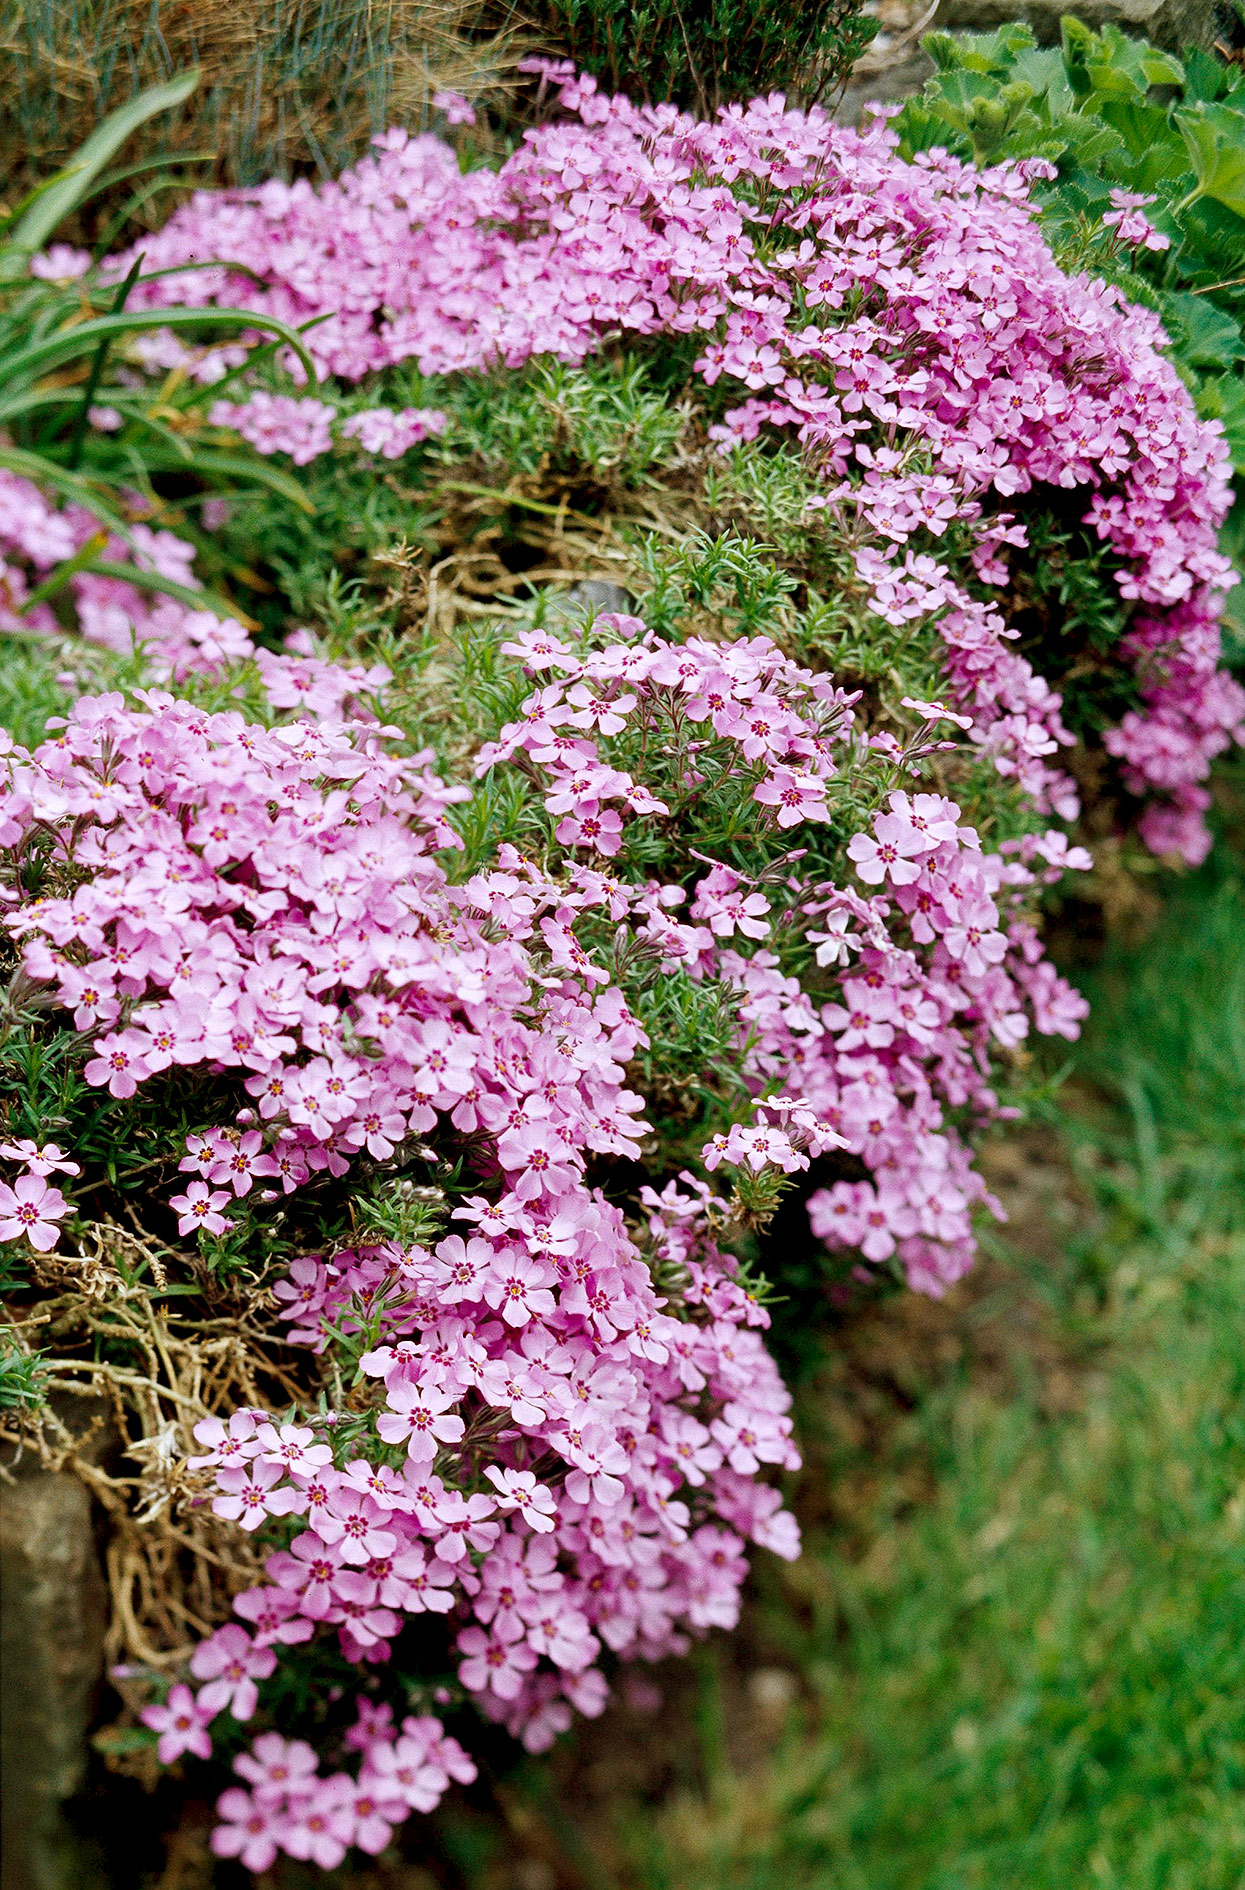 moss phlox creeping perennial groundcover with pink blossoms